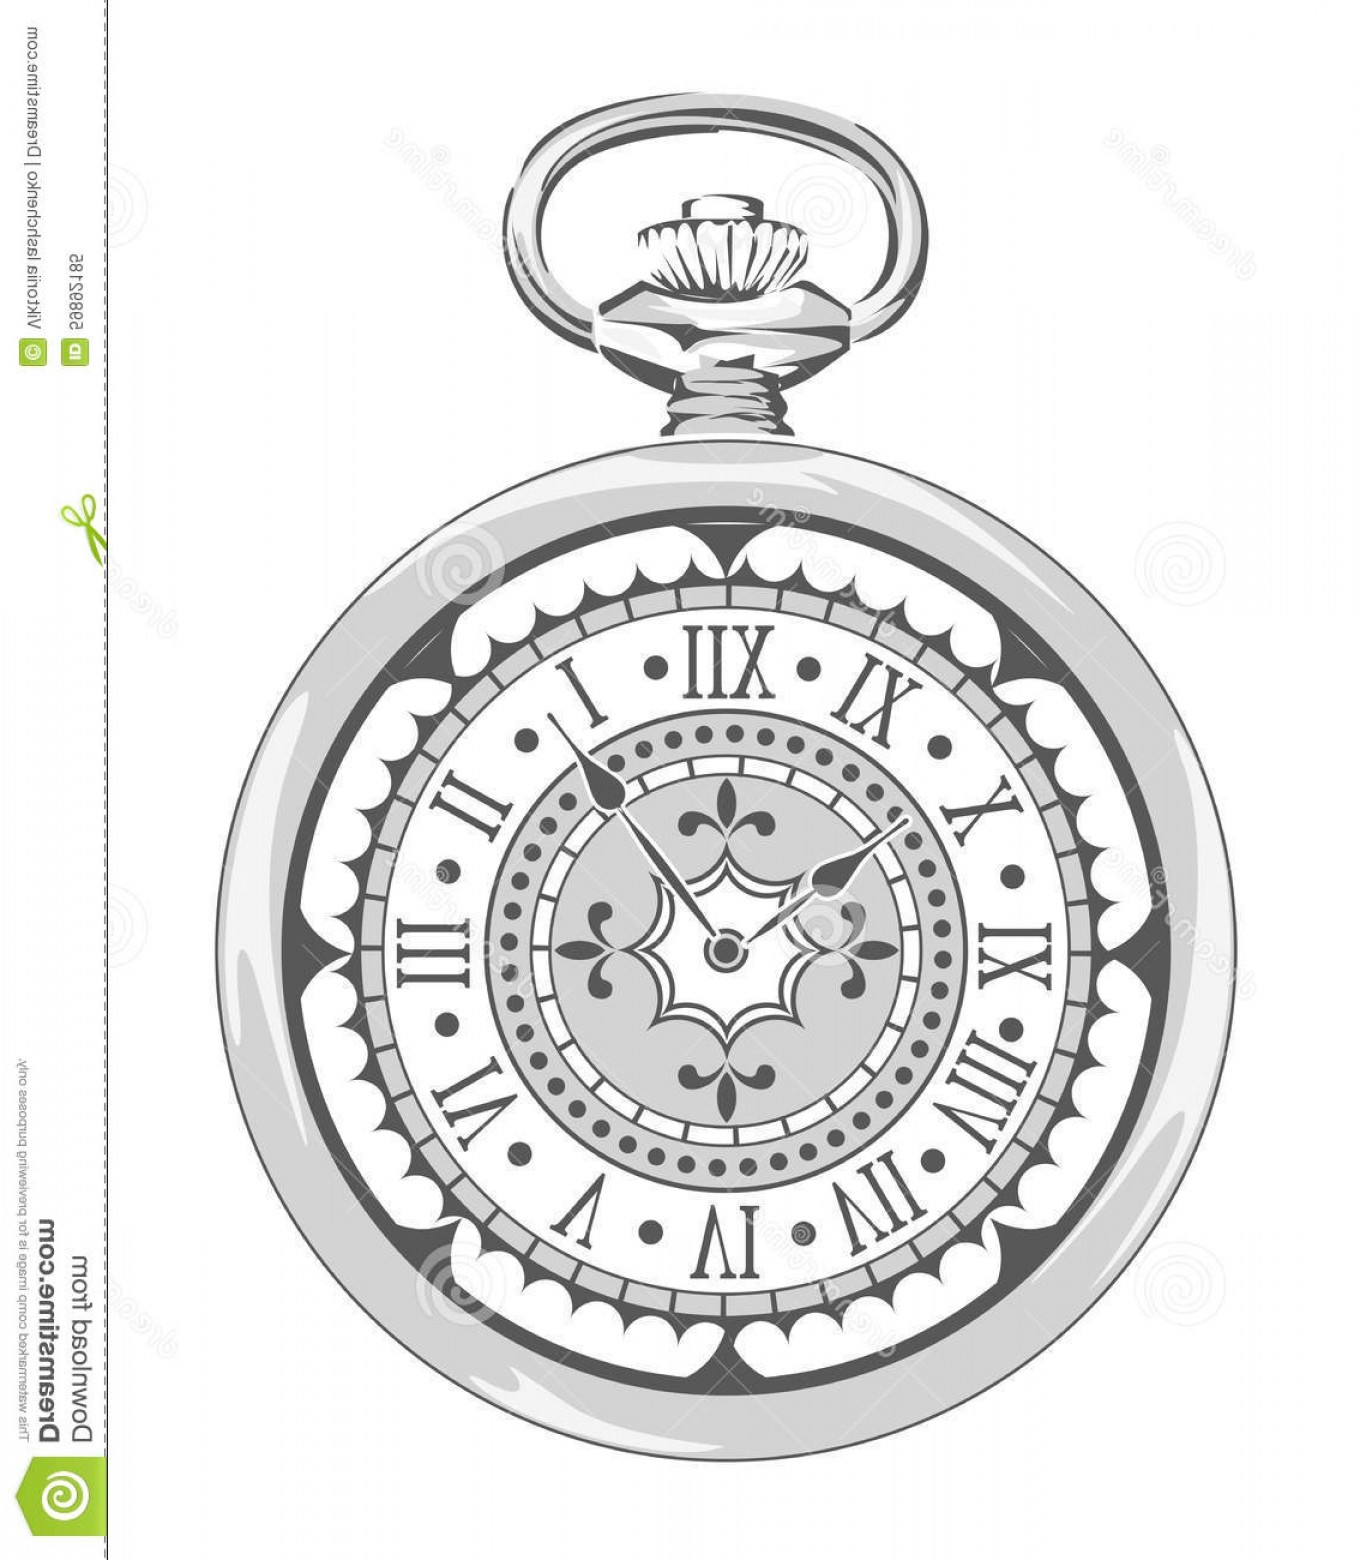 Watch Face Vector: Stock Illustration Old Vintage Watch Decorative Face Vector Illustration Image